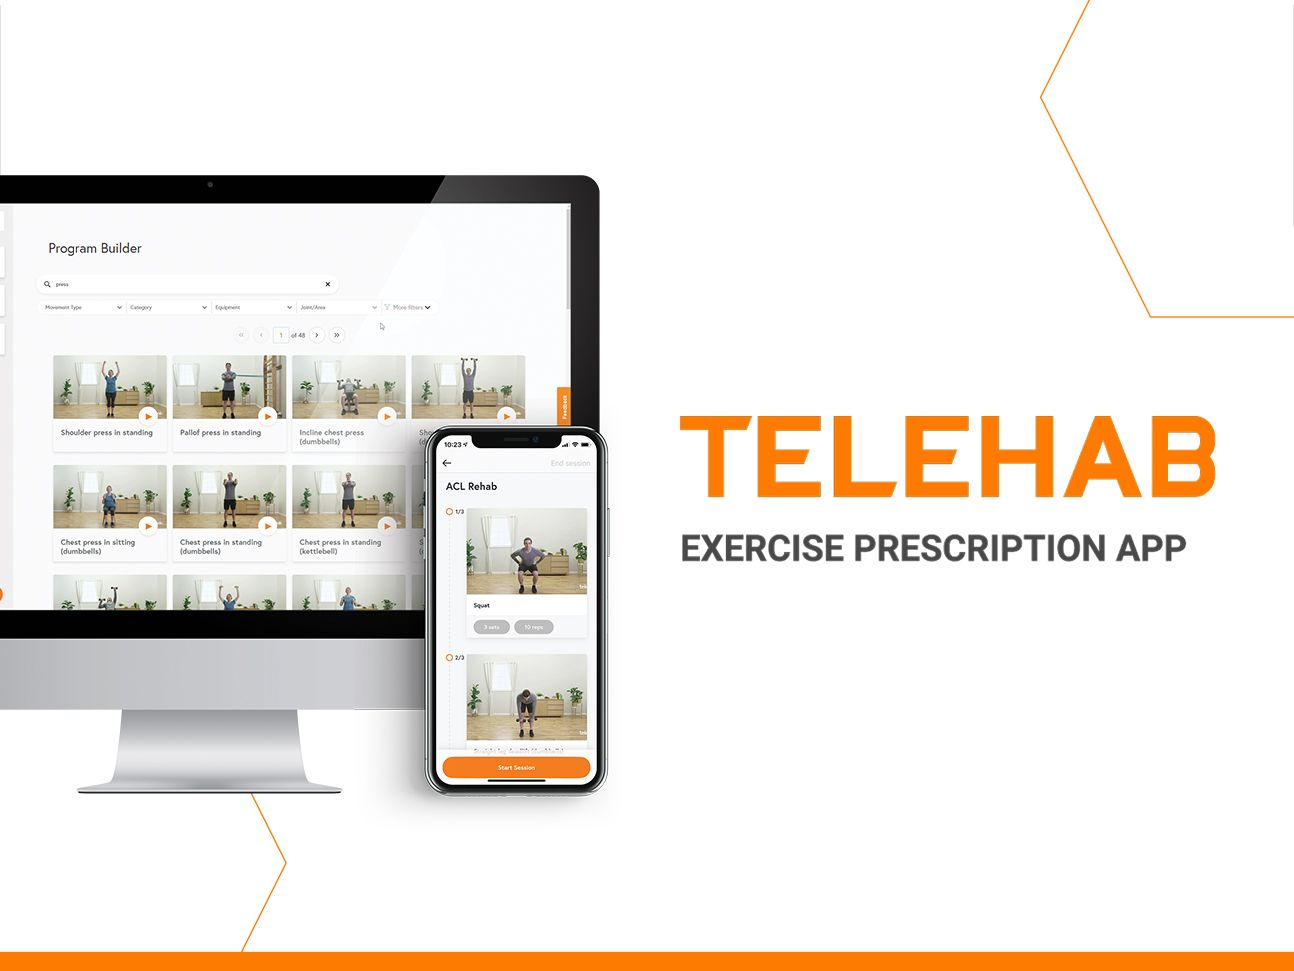 Telehab Exercise prescription app